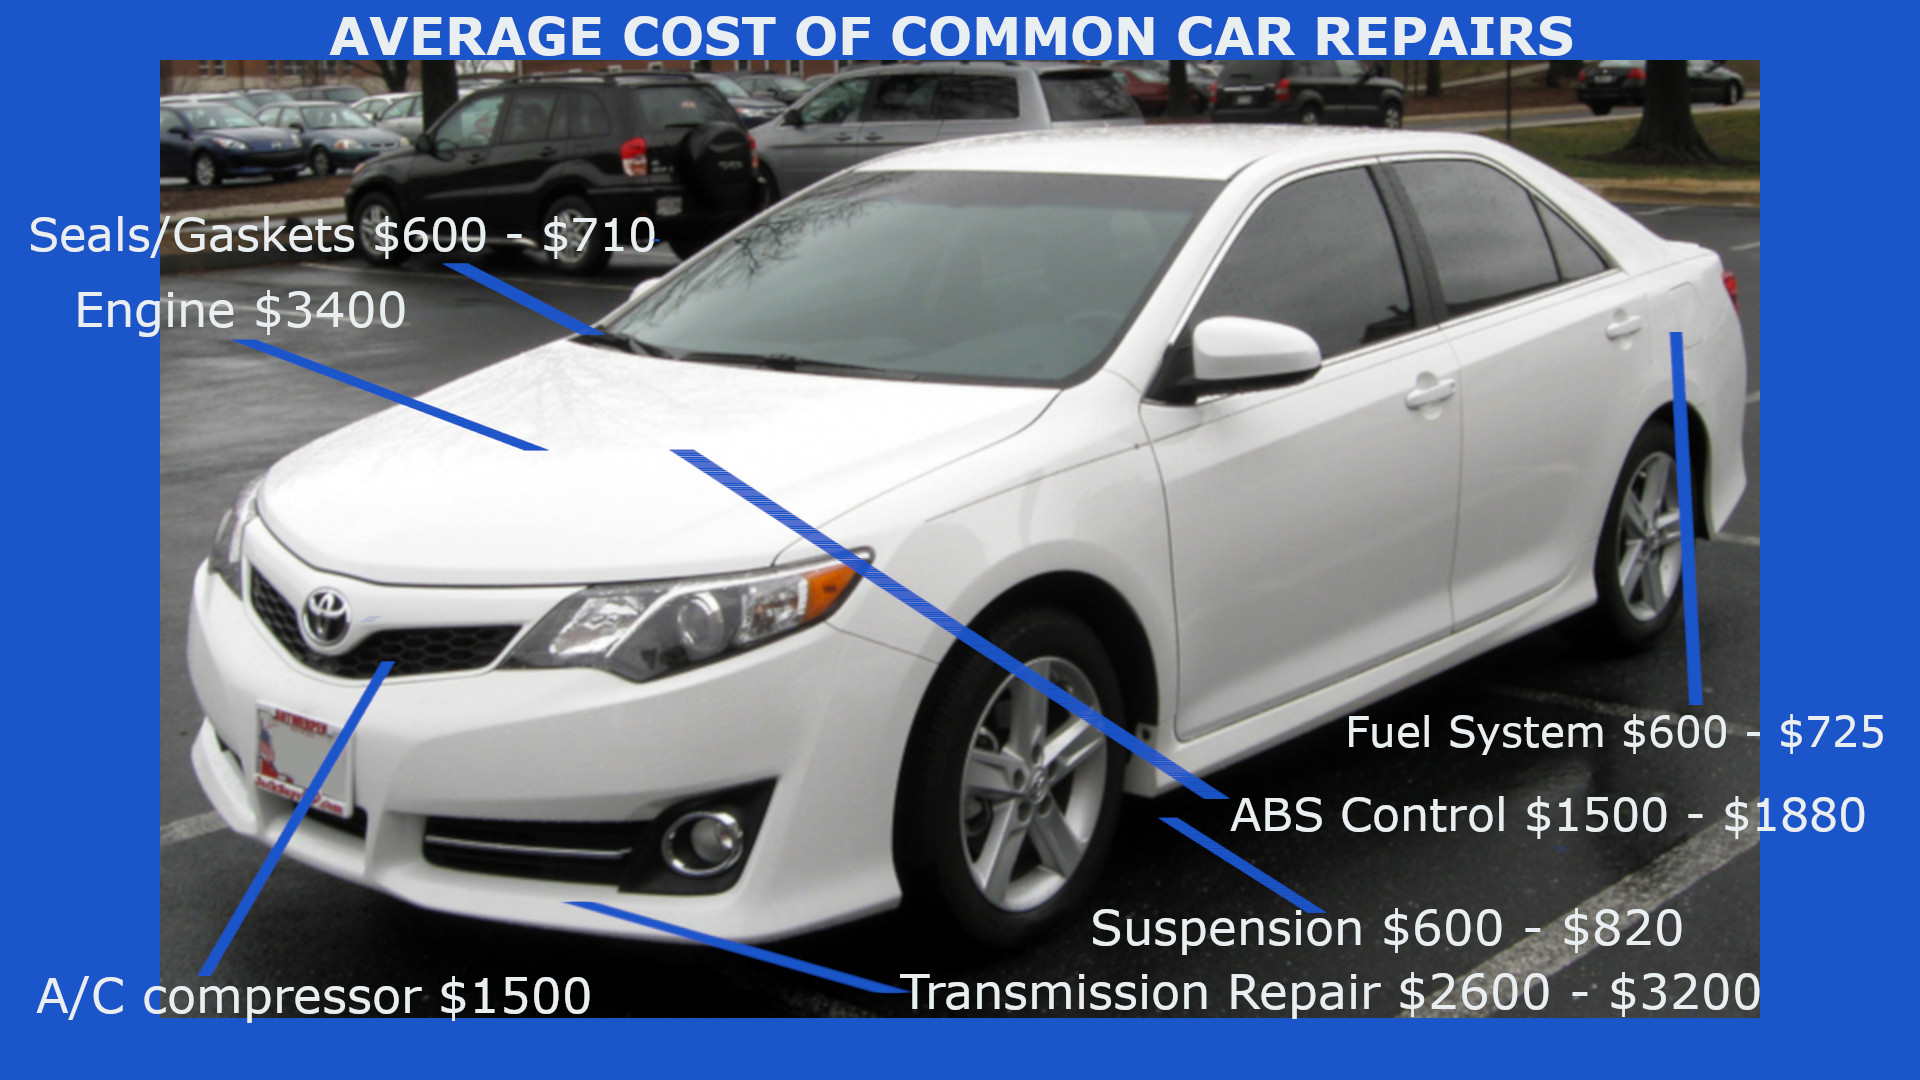 Toyota common car repairs needing an extended warranty